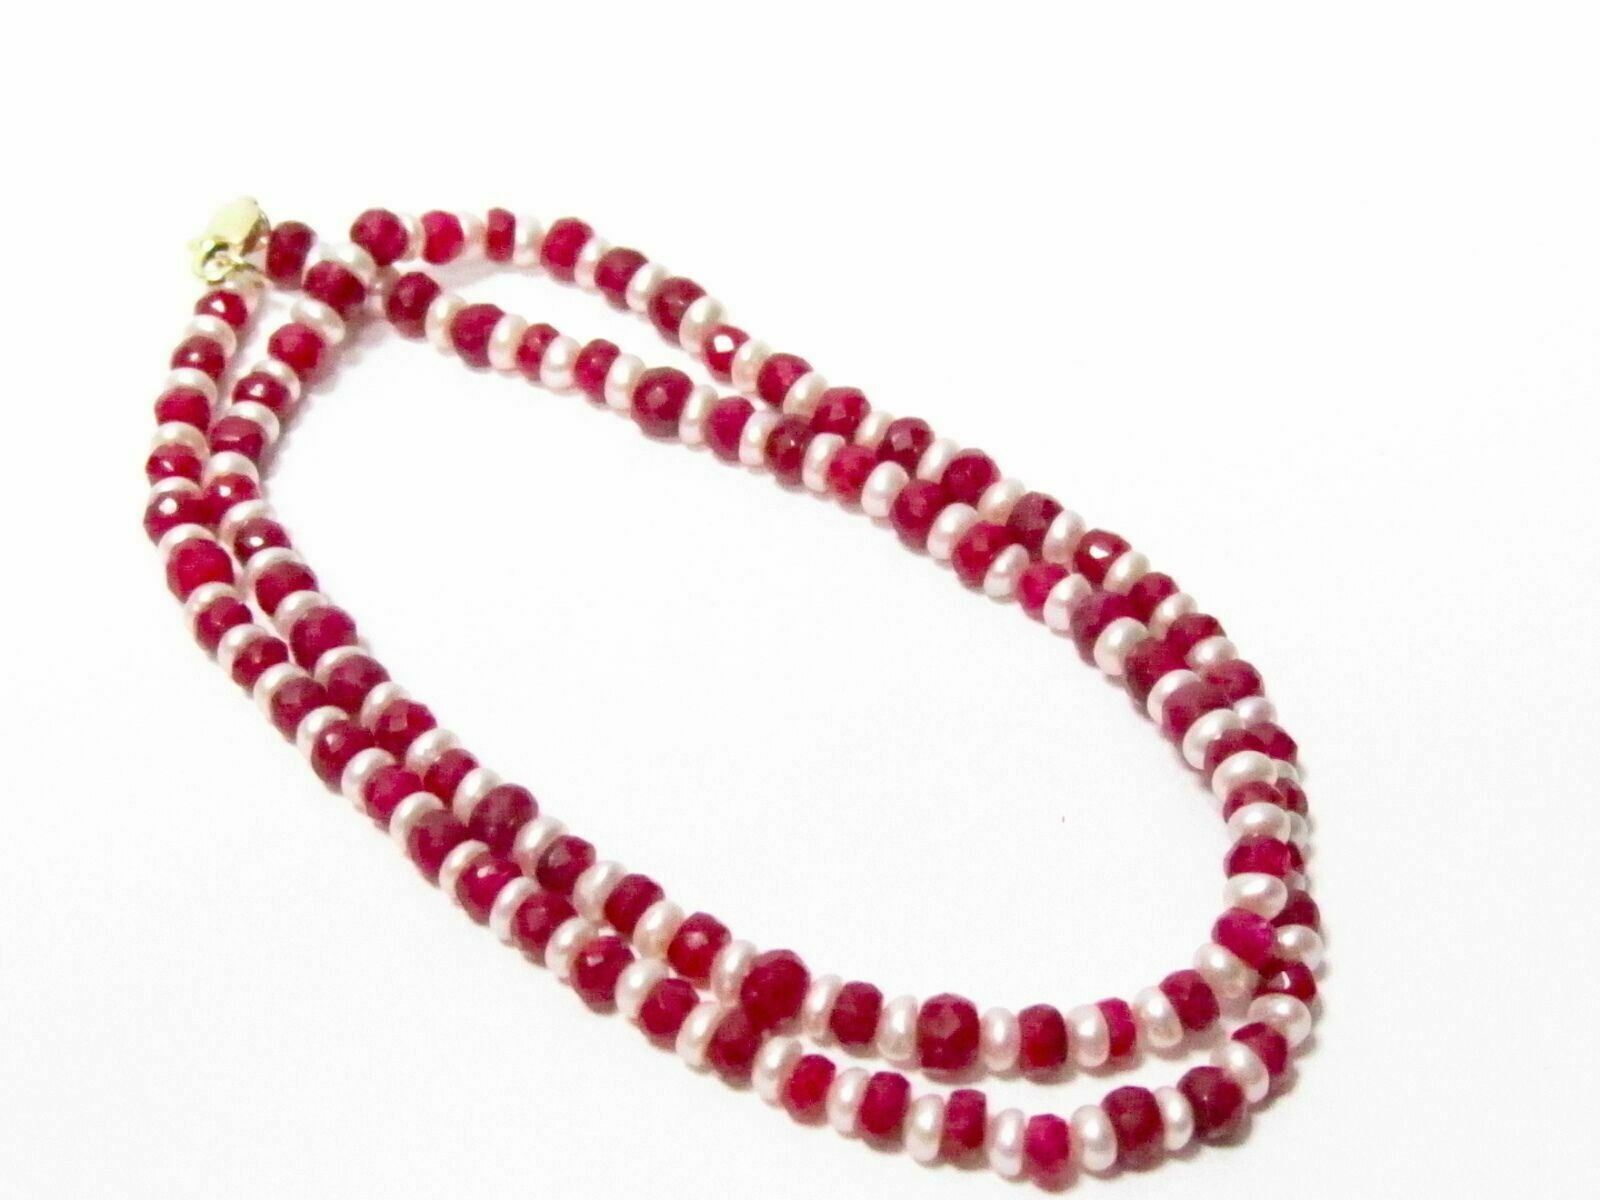 83 TCW Natural White Pearl & Red Ruby String/Strand Necklace 17 inches 14k Gold